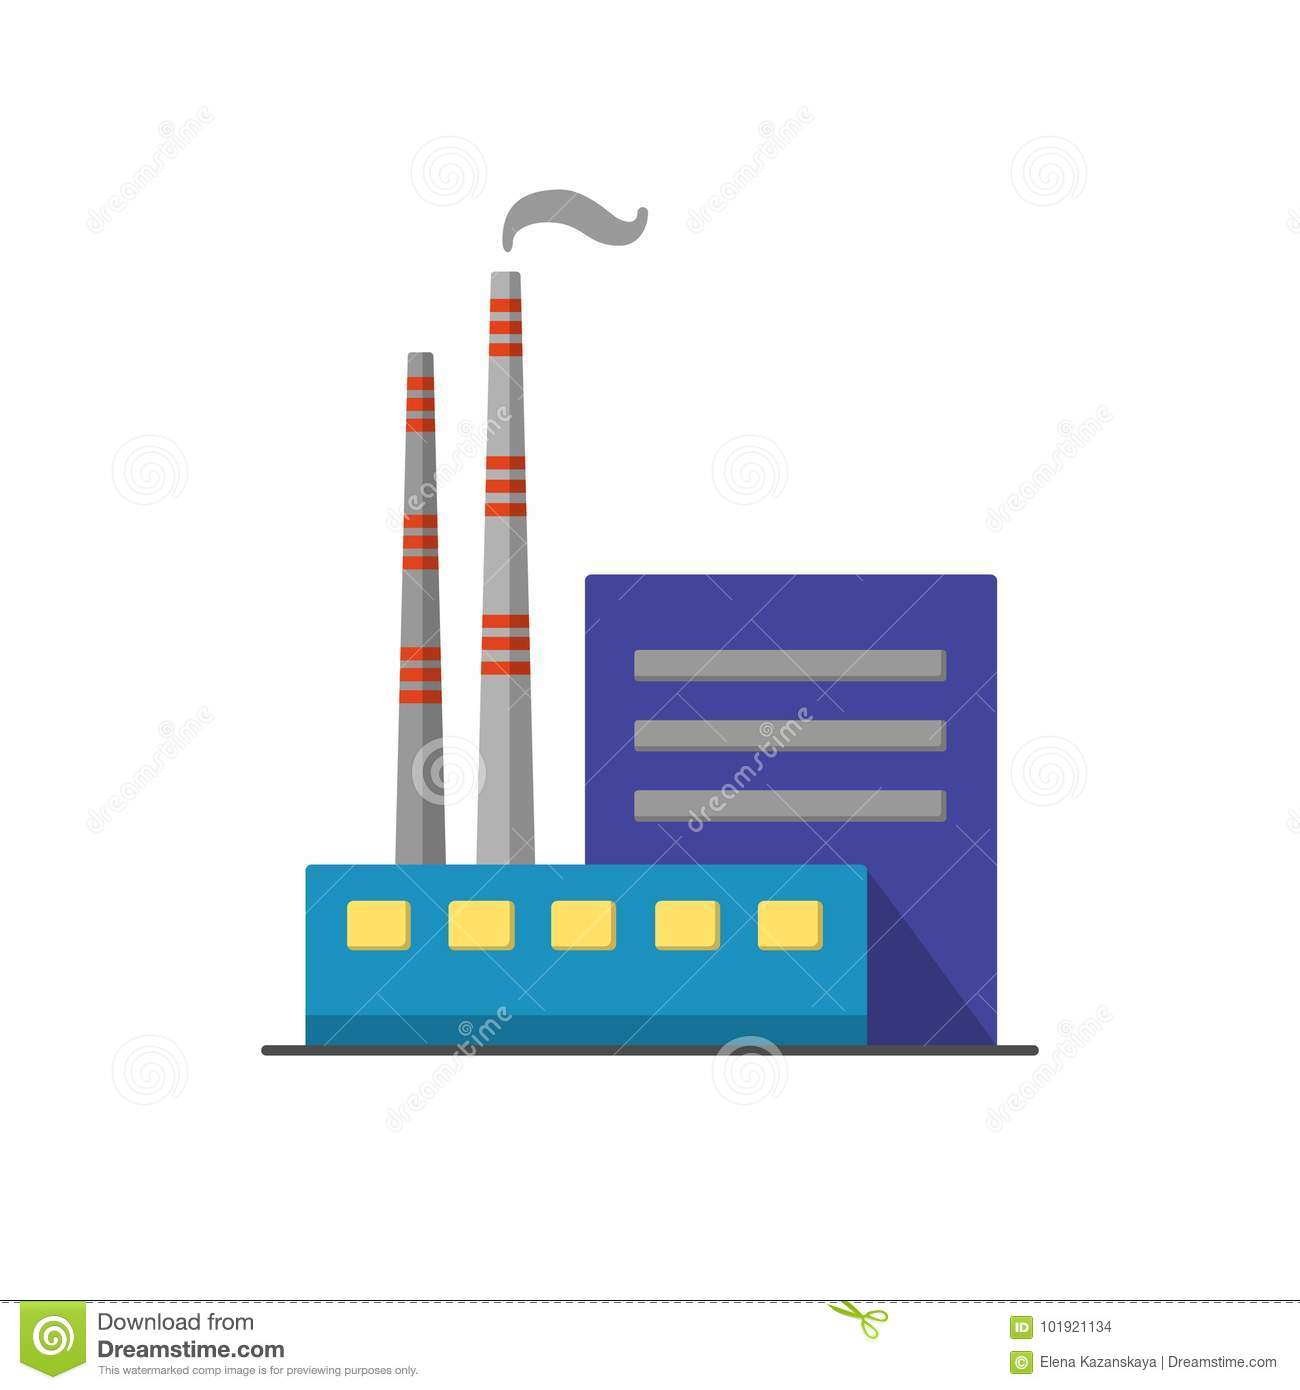 Fossil Fuel Plant Diagram Coal Power Download Icon In Flat Style Stock Vector Illustration Of Chimney Emblem 1300x1390